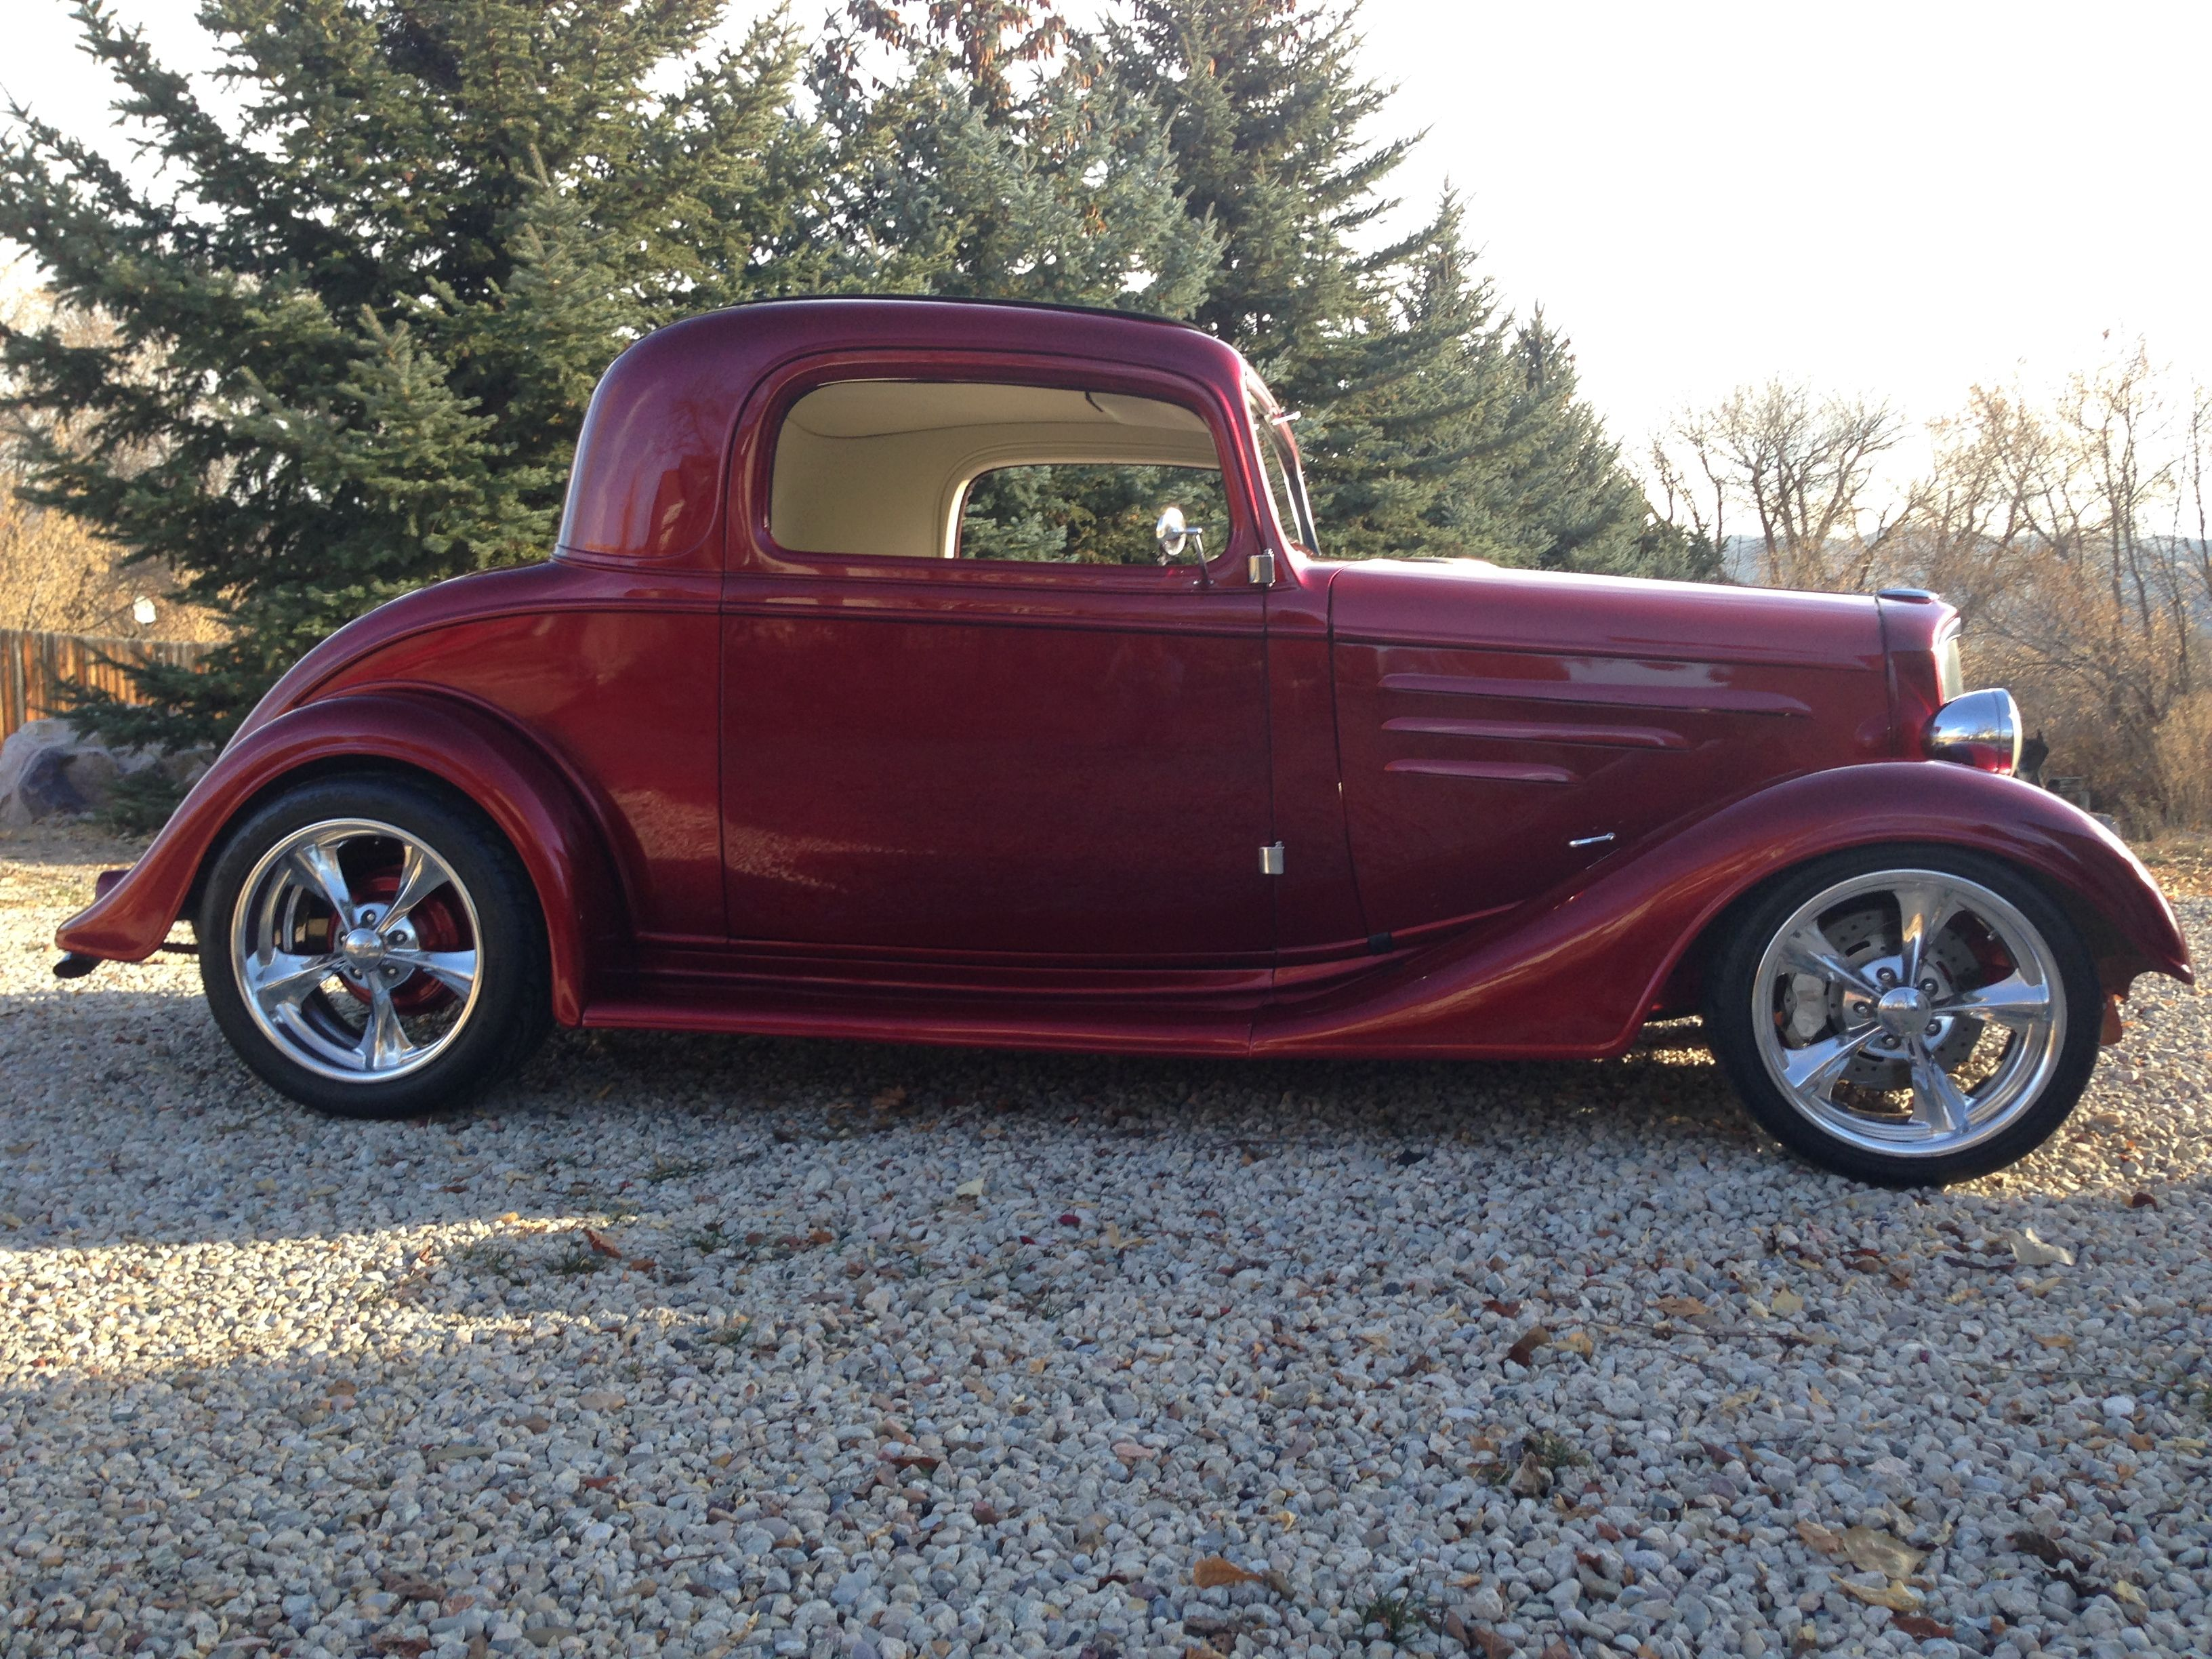 34 Chevy Coupe Hot Rod | Nice Ride | Hot rod trucks, Hot